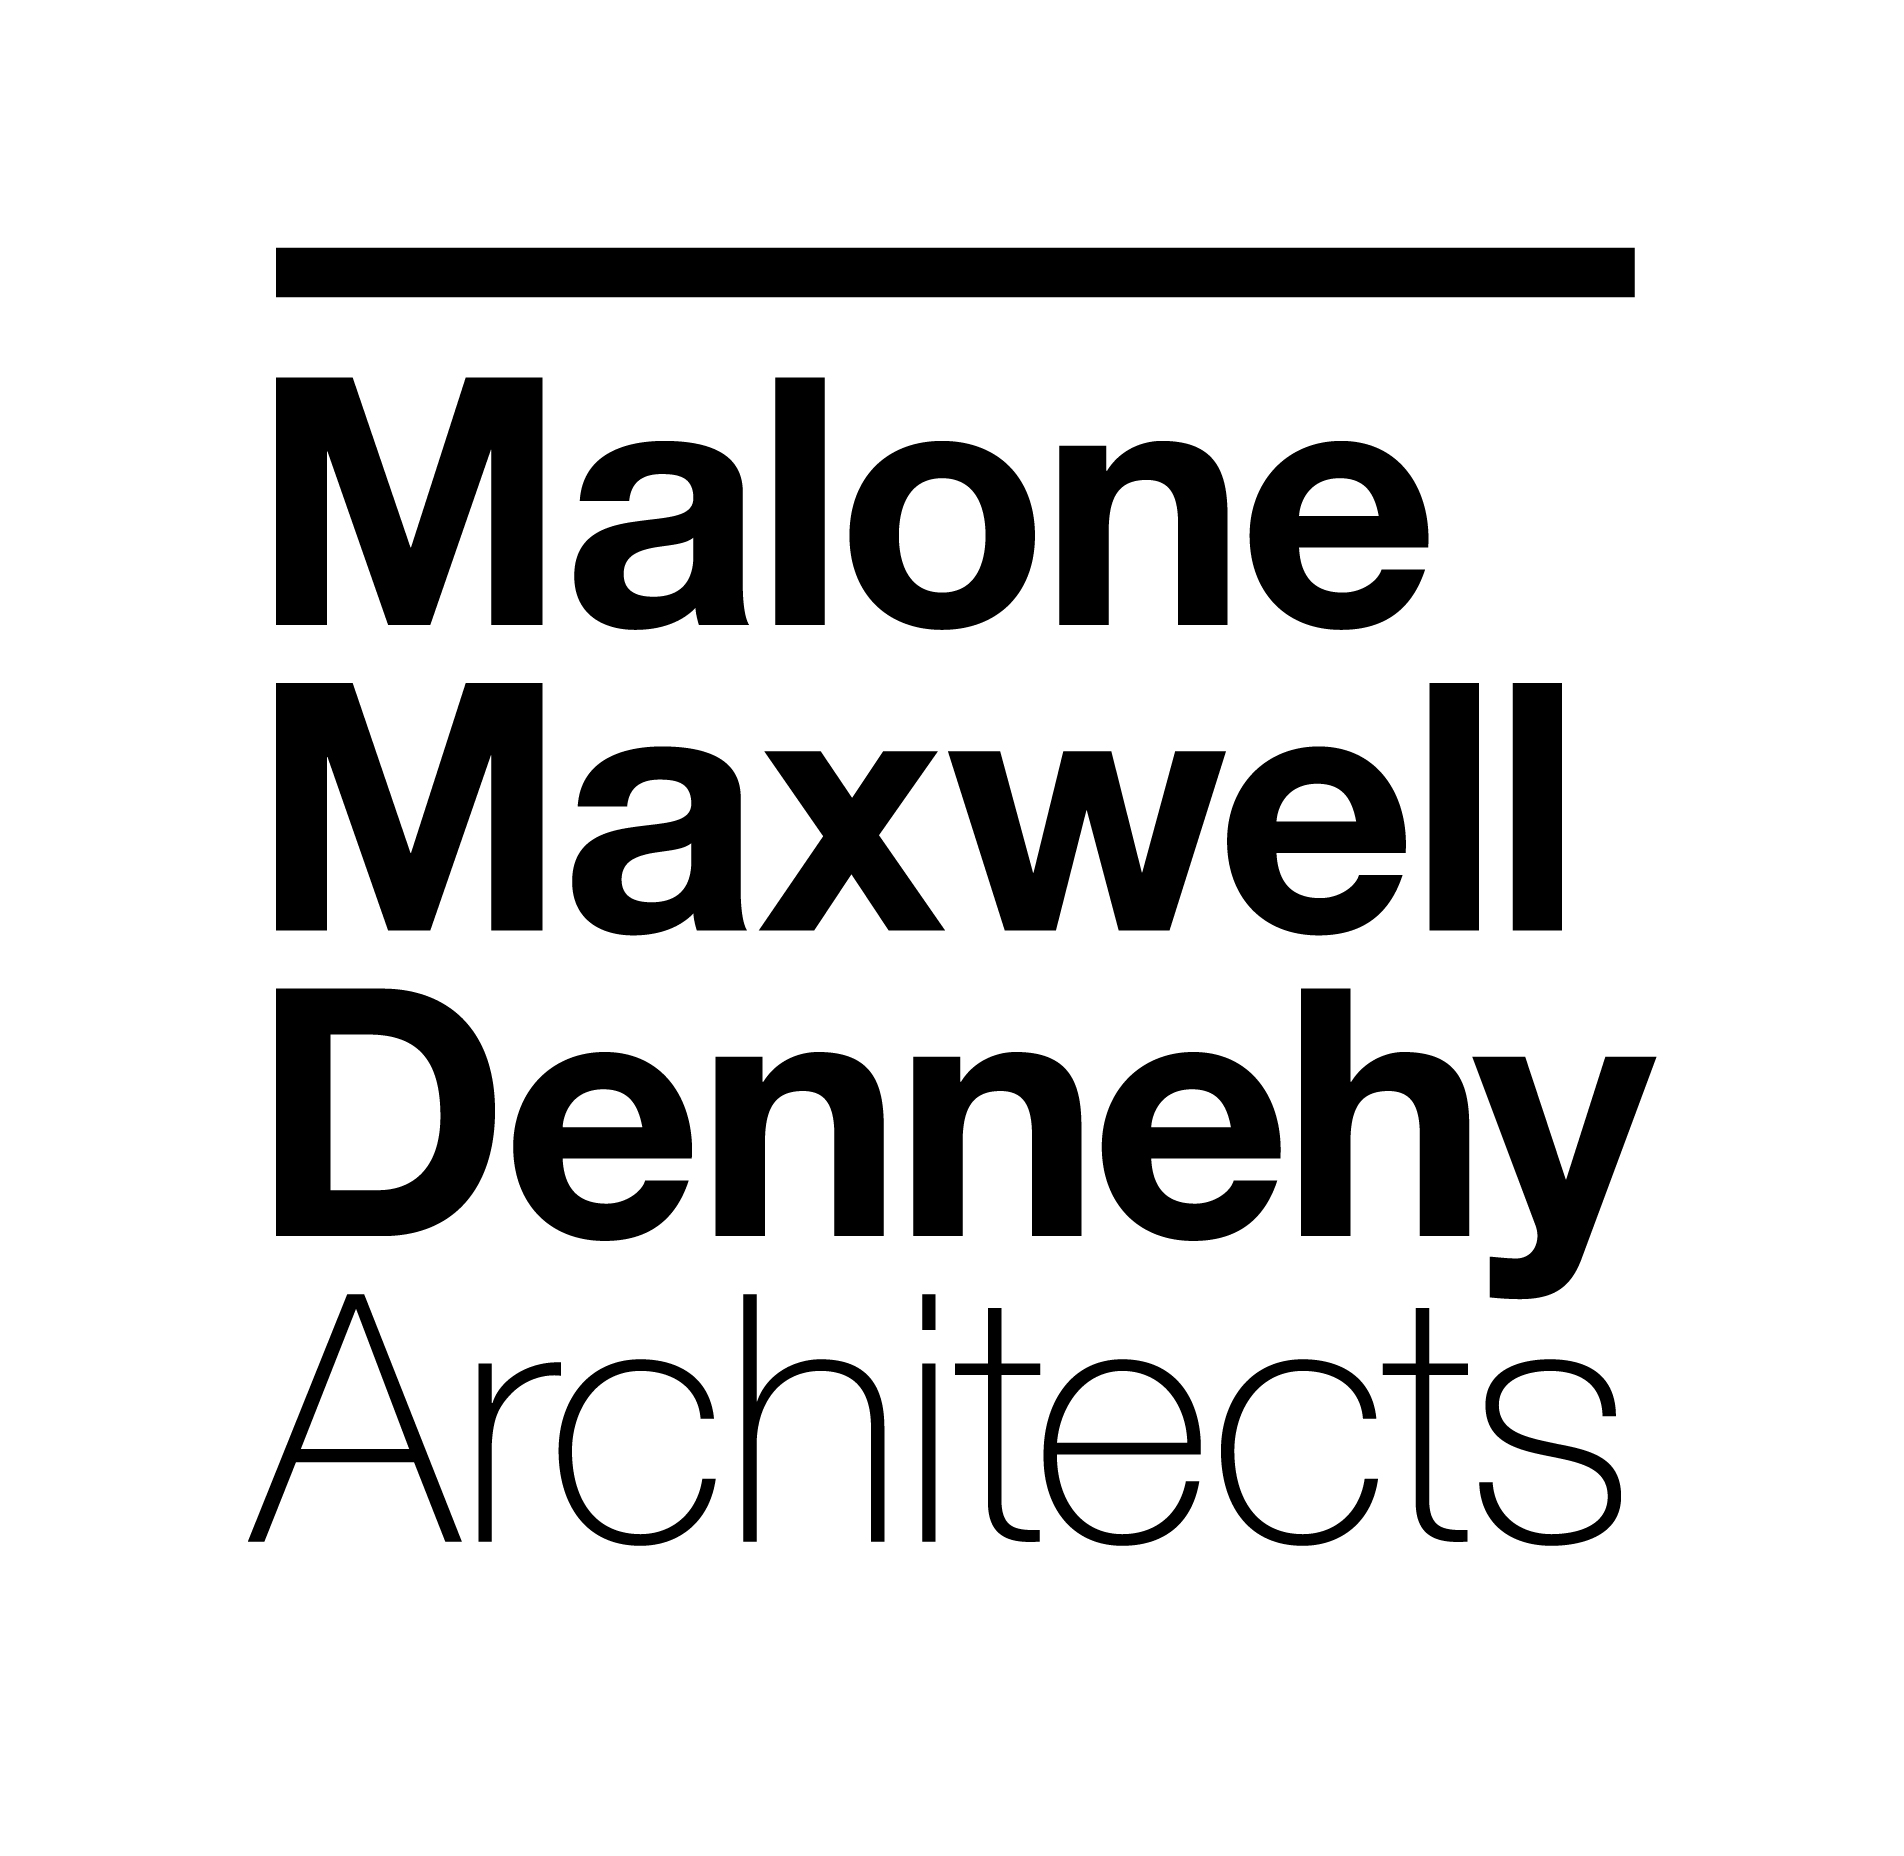 2020 Home Tour - Malone Maxwell Dennehy Architects logo